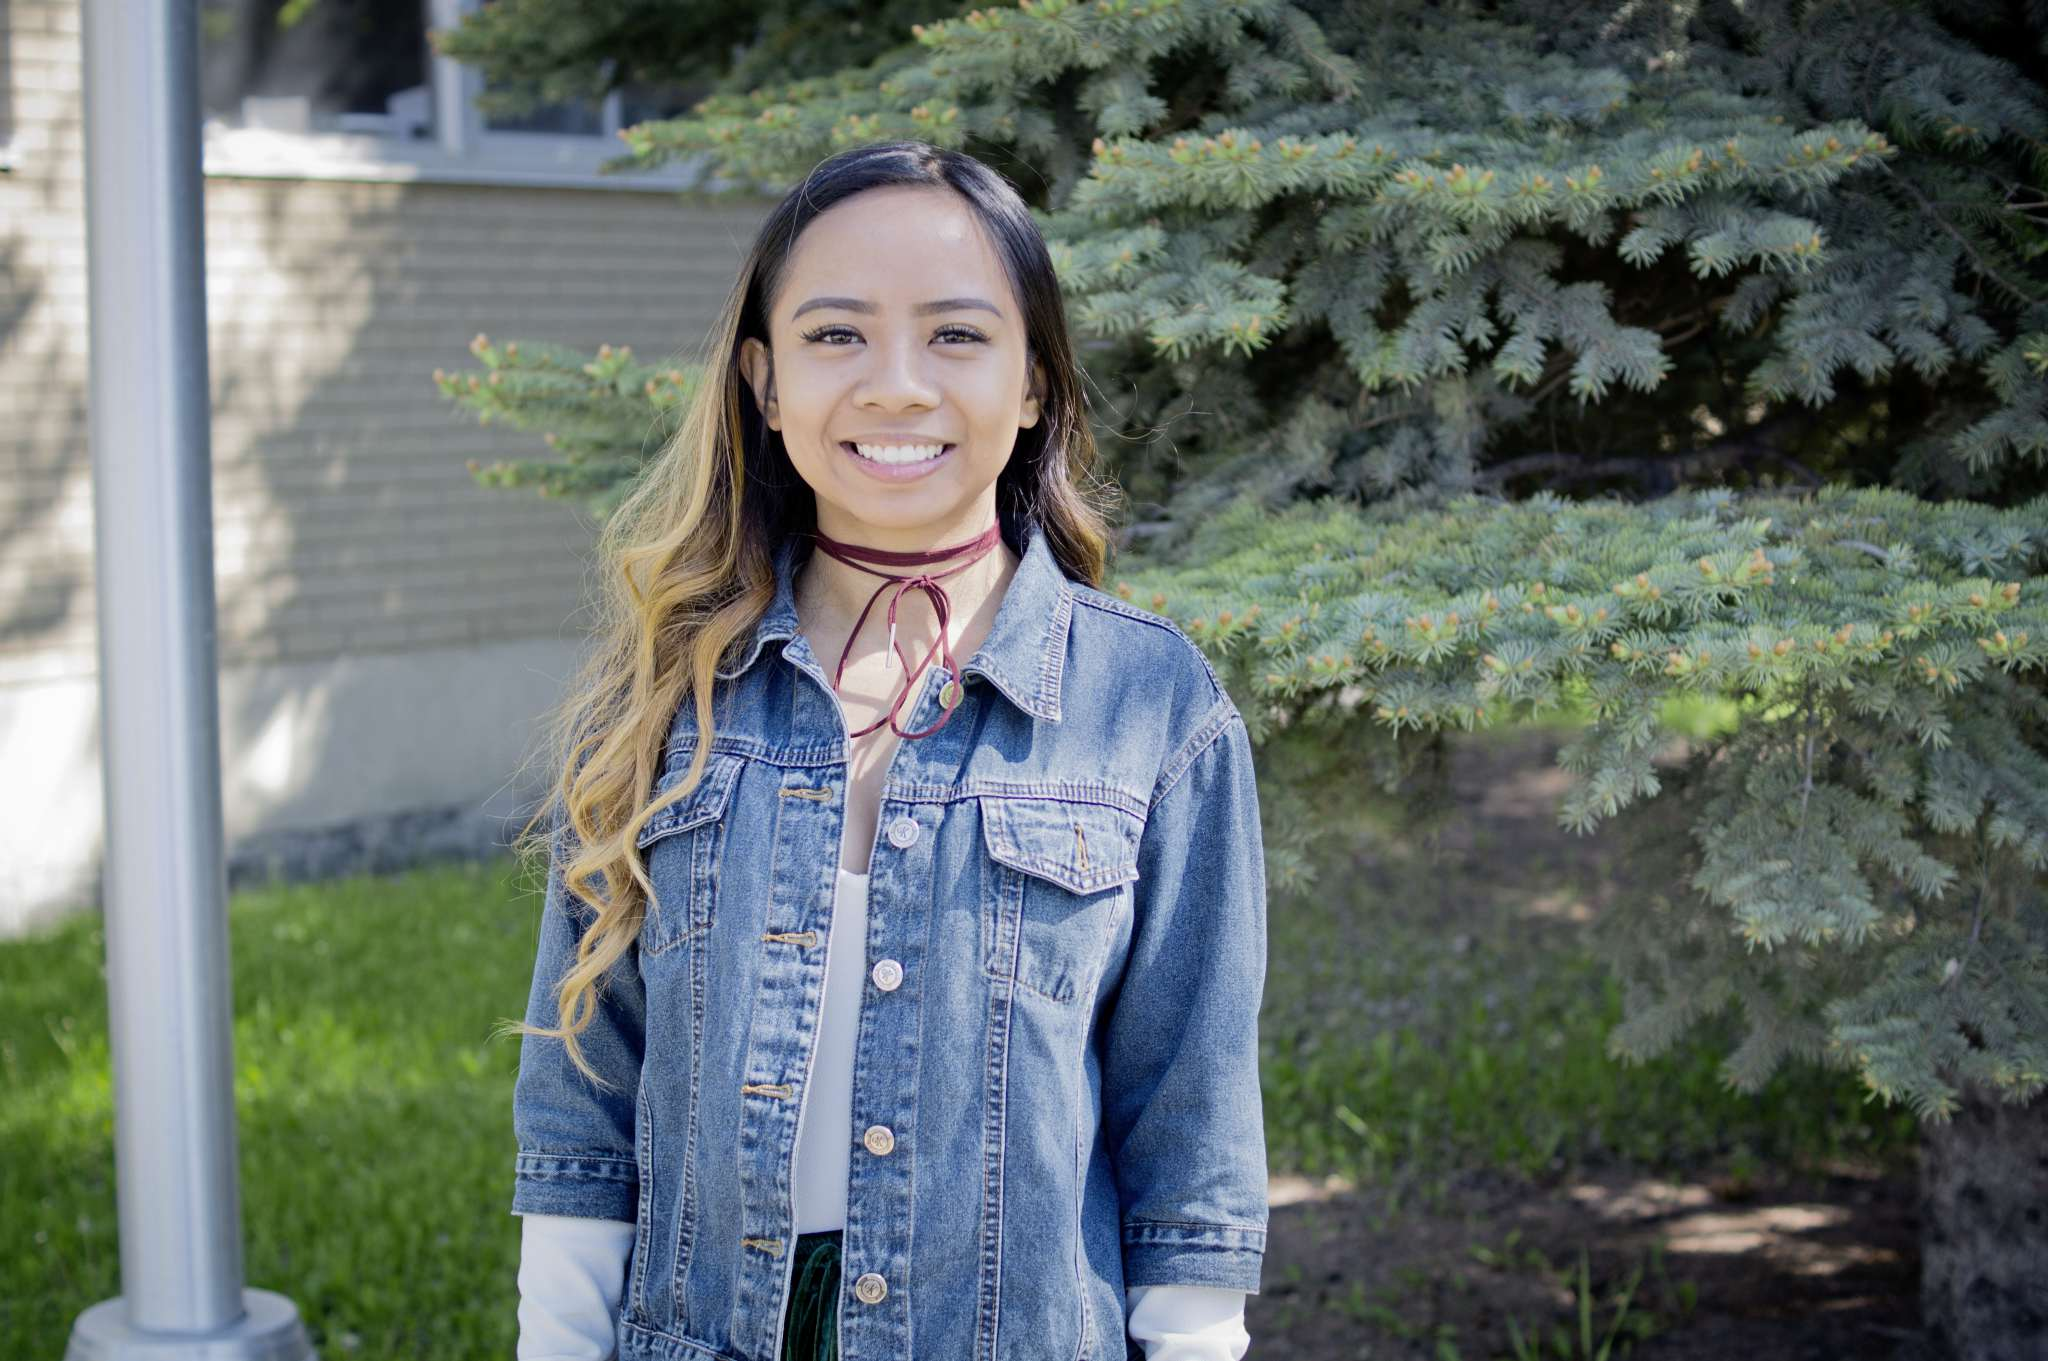 Loizza Aquino, a Grade 12 student at Vincent Massey Collegiate, is one of 20 graduating high school students across the country to receive the $70,000 TD Scholarship for Community Leadership.